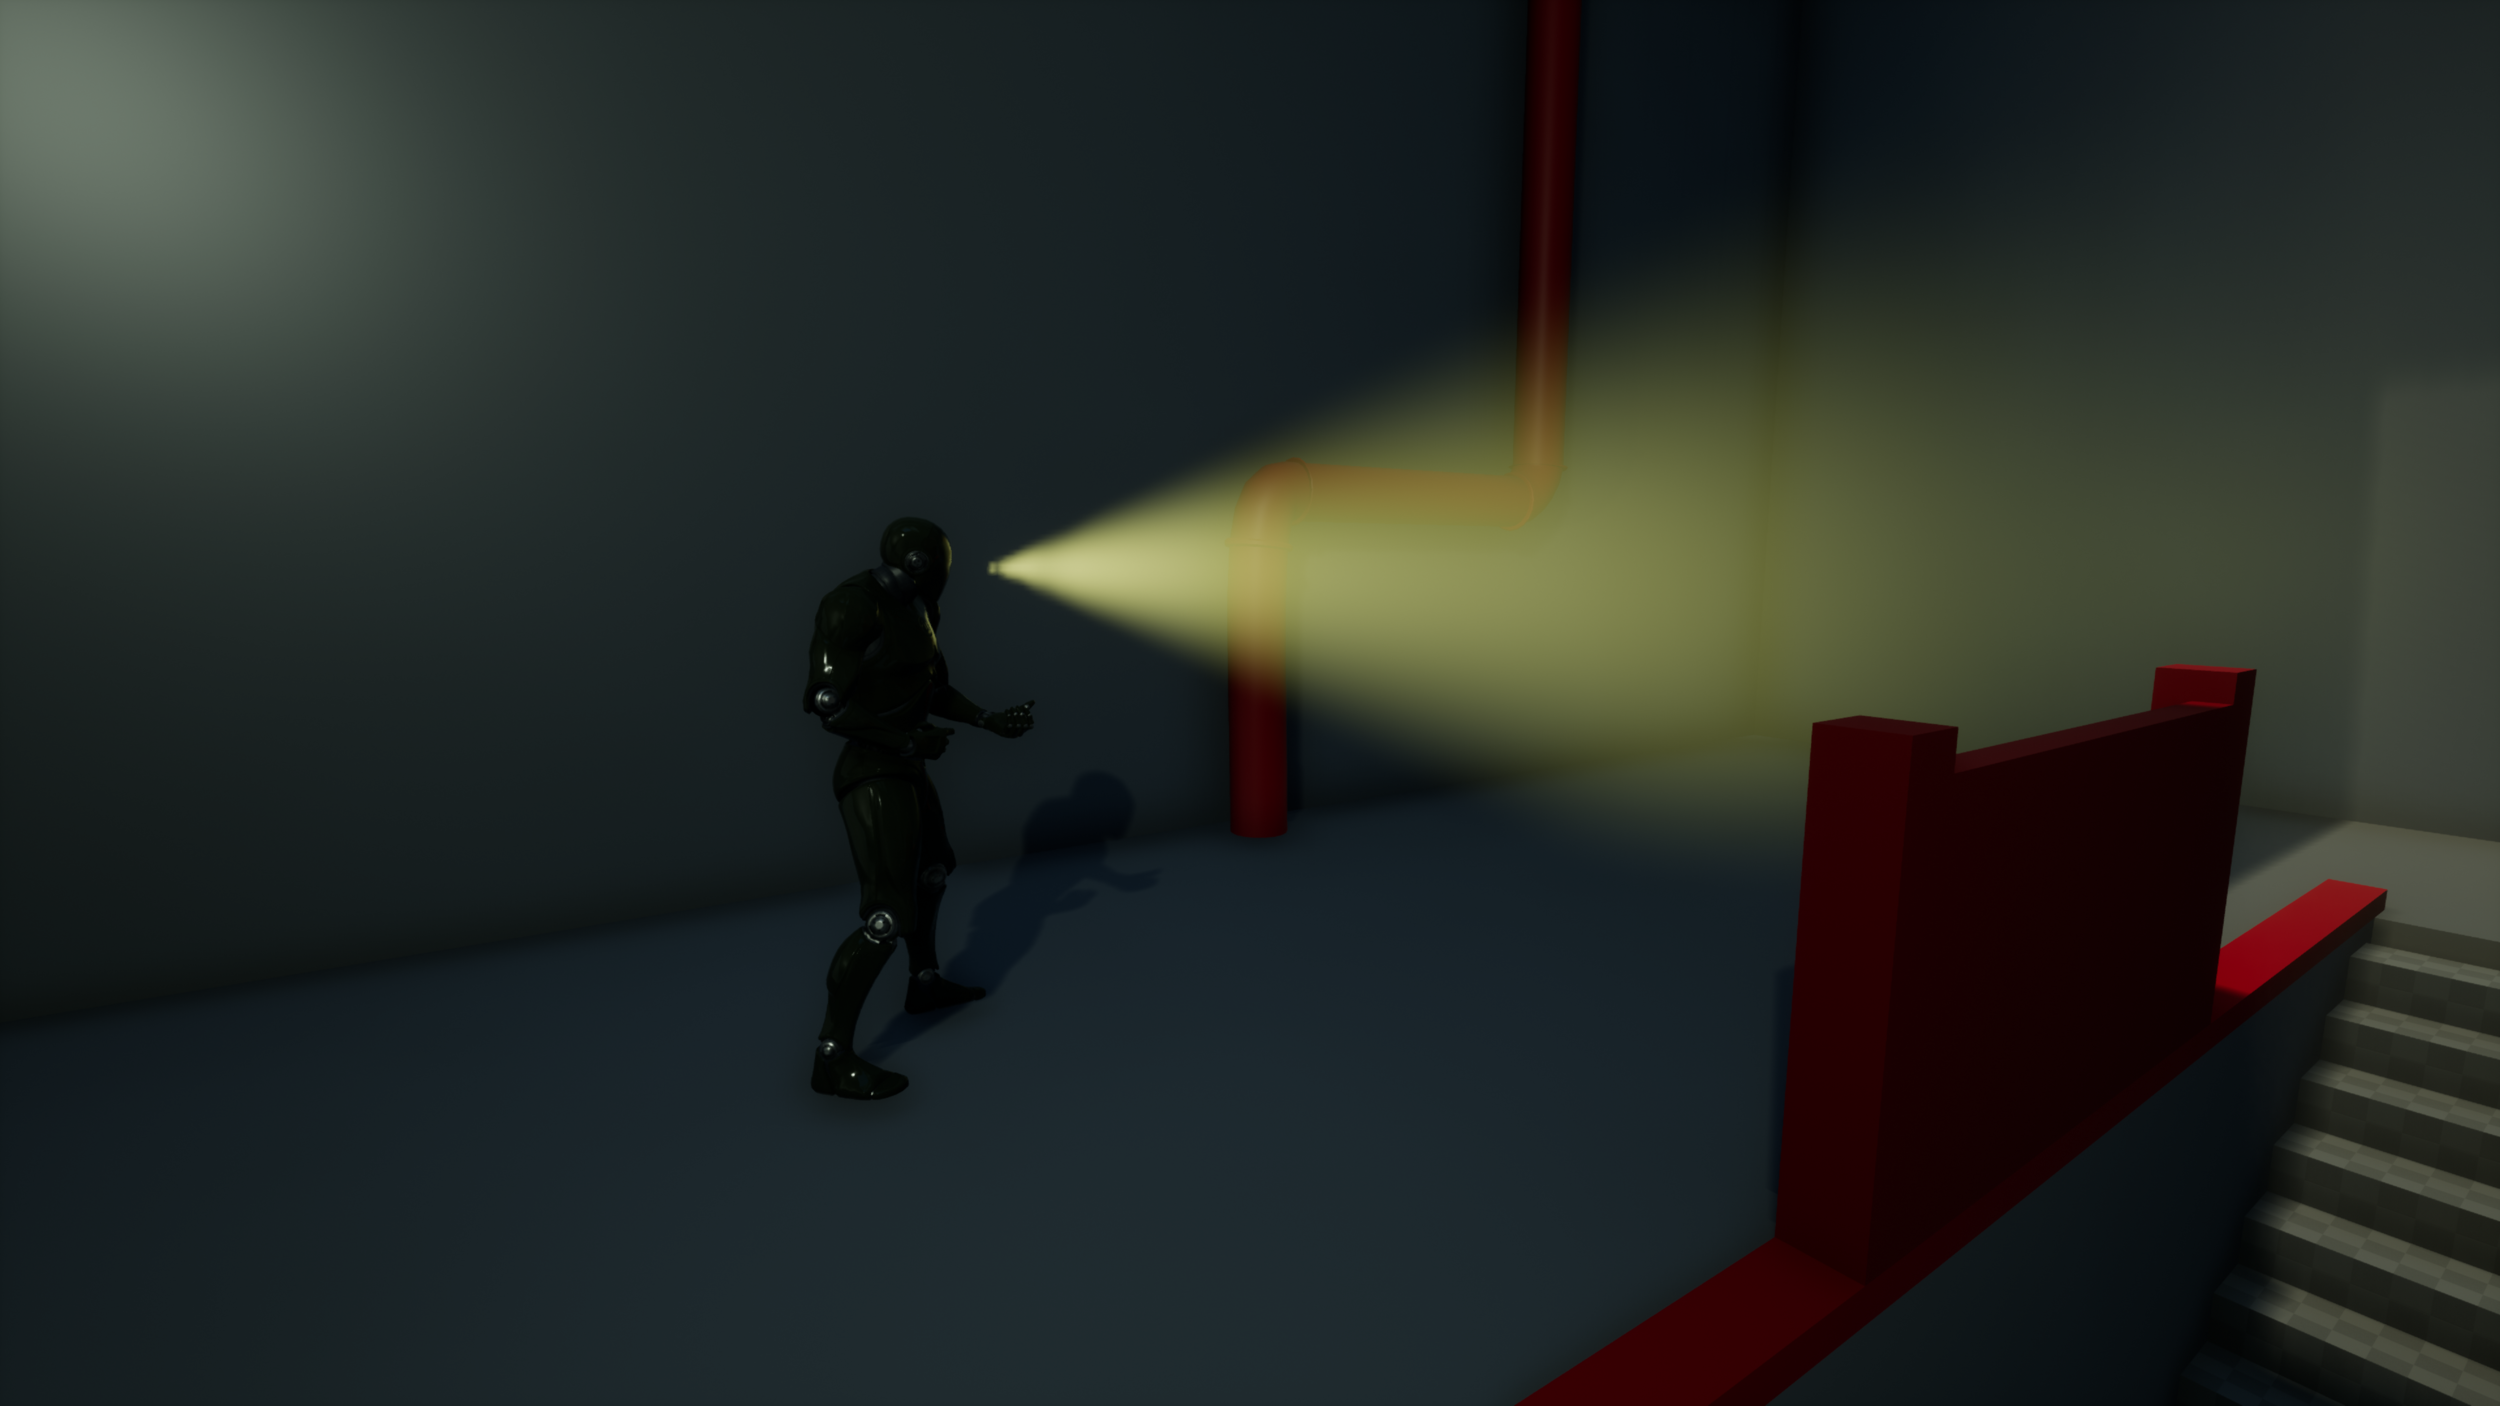 A Guard inside the game. Clearly communicated Cone-of -Vision in front that changes colour depending on guards alertness state.